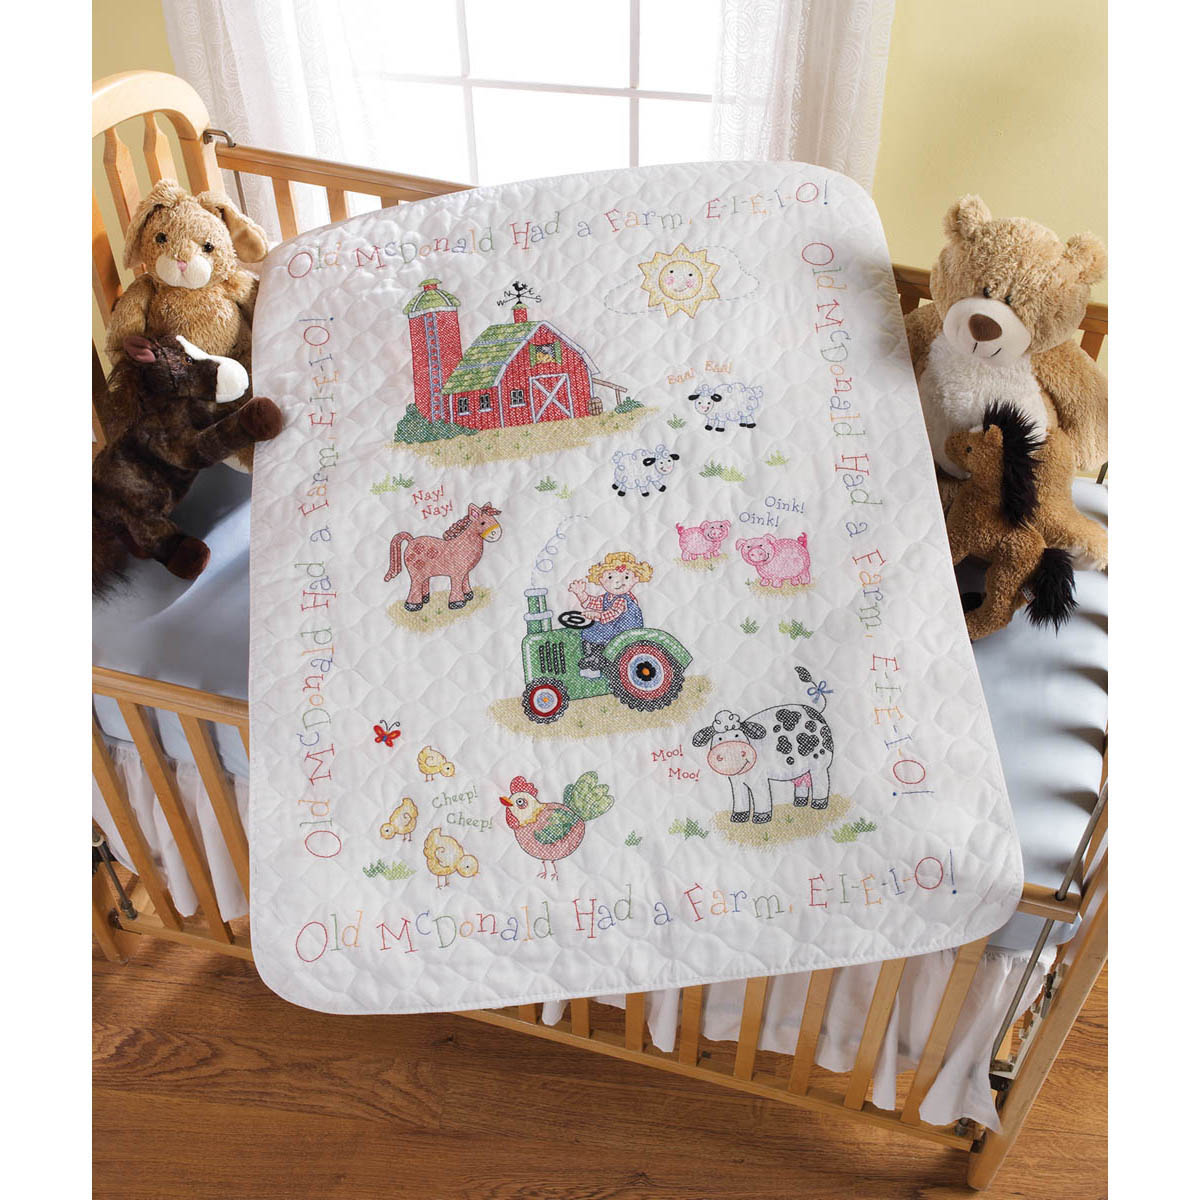 Bucilla ® Baby - Stamped Cross Stitch - Crib Ensembles - On the Farm  - Crib Cover Kit